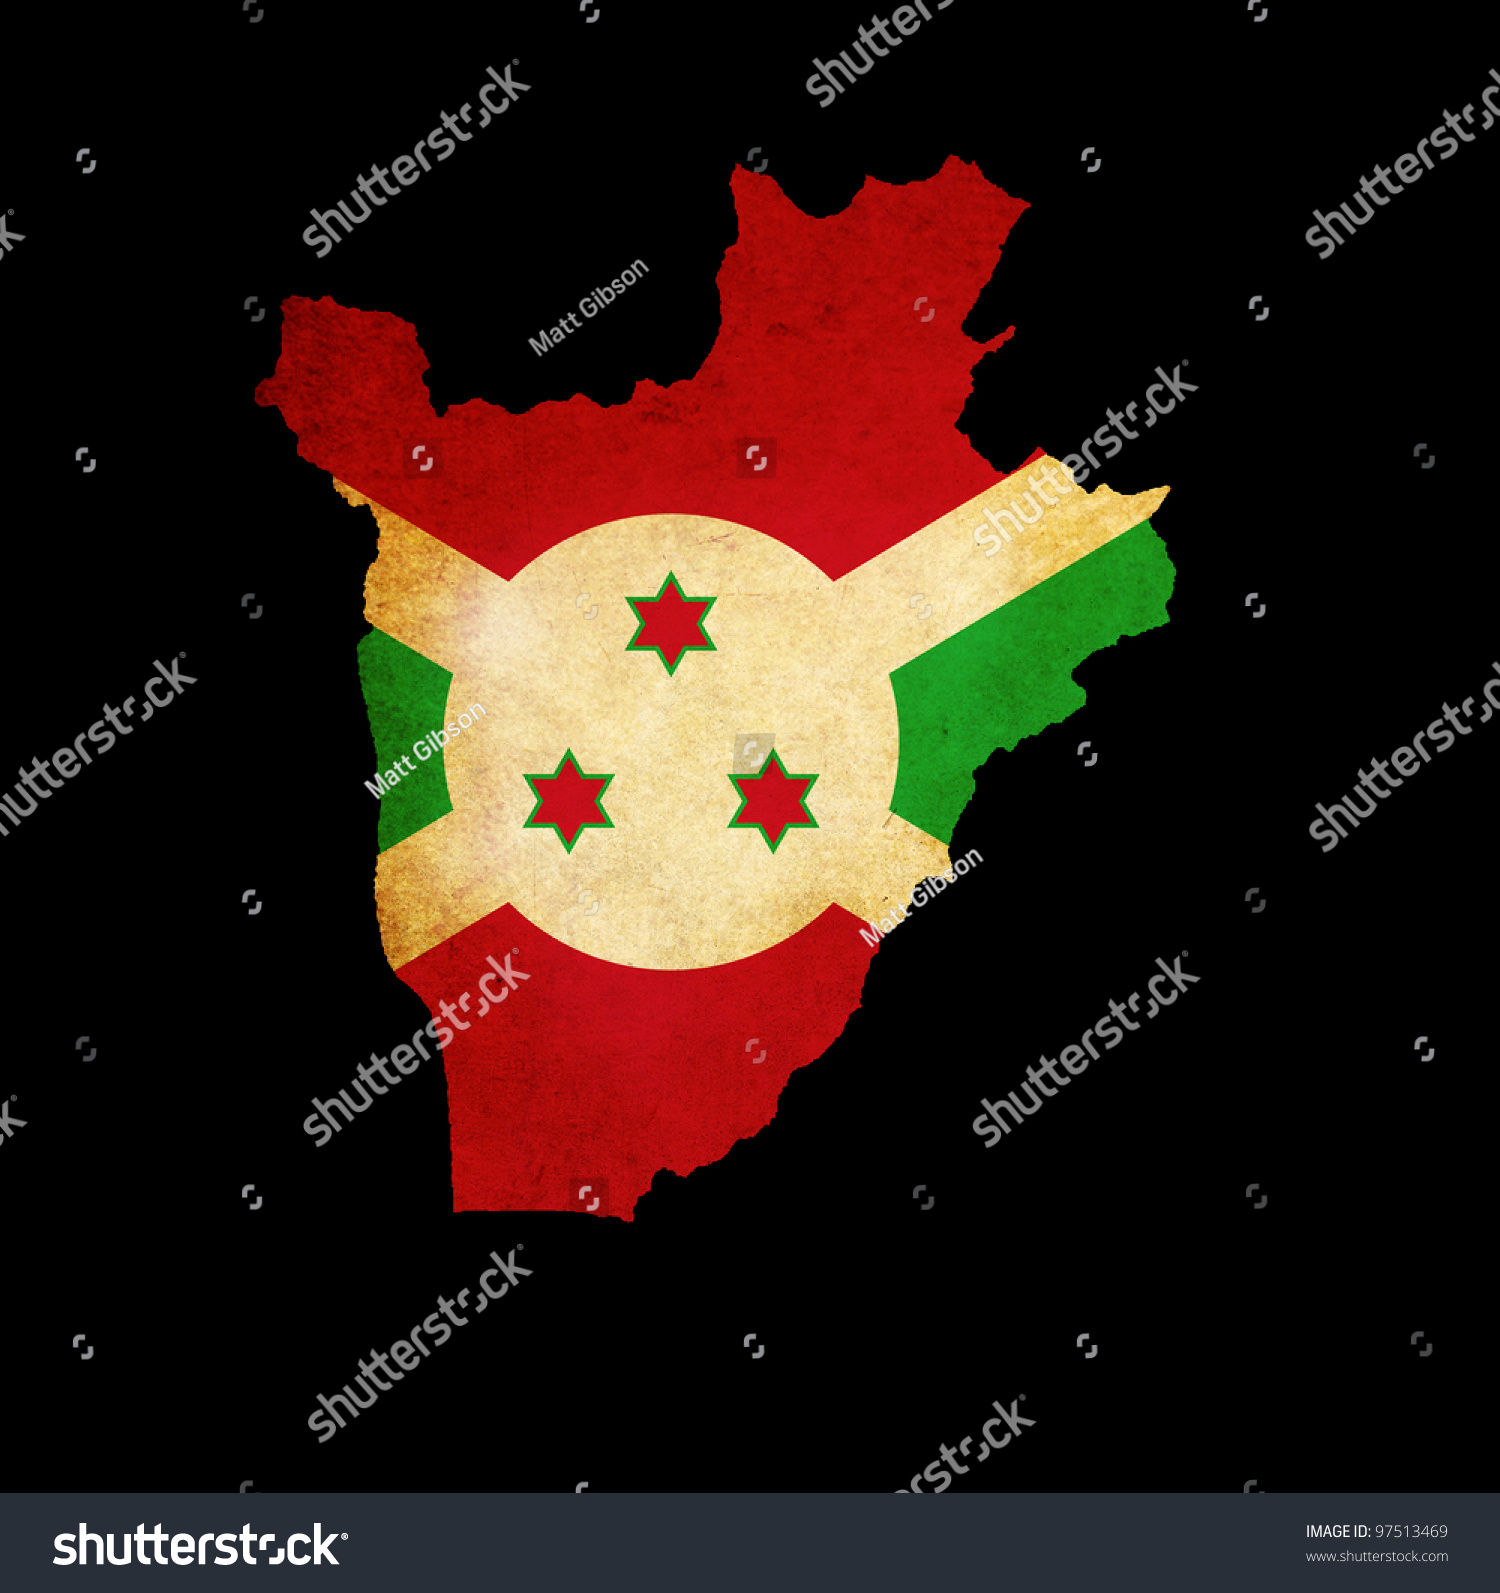 Outline Map Burundi Flag Grunge Paper Stock Illustration 97513469 ...